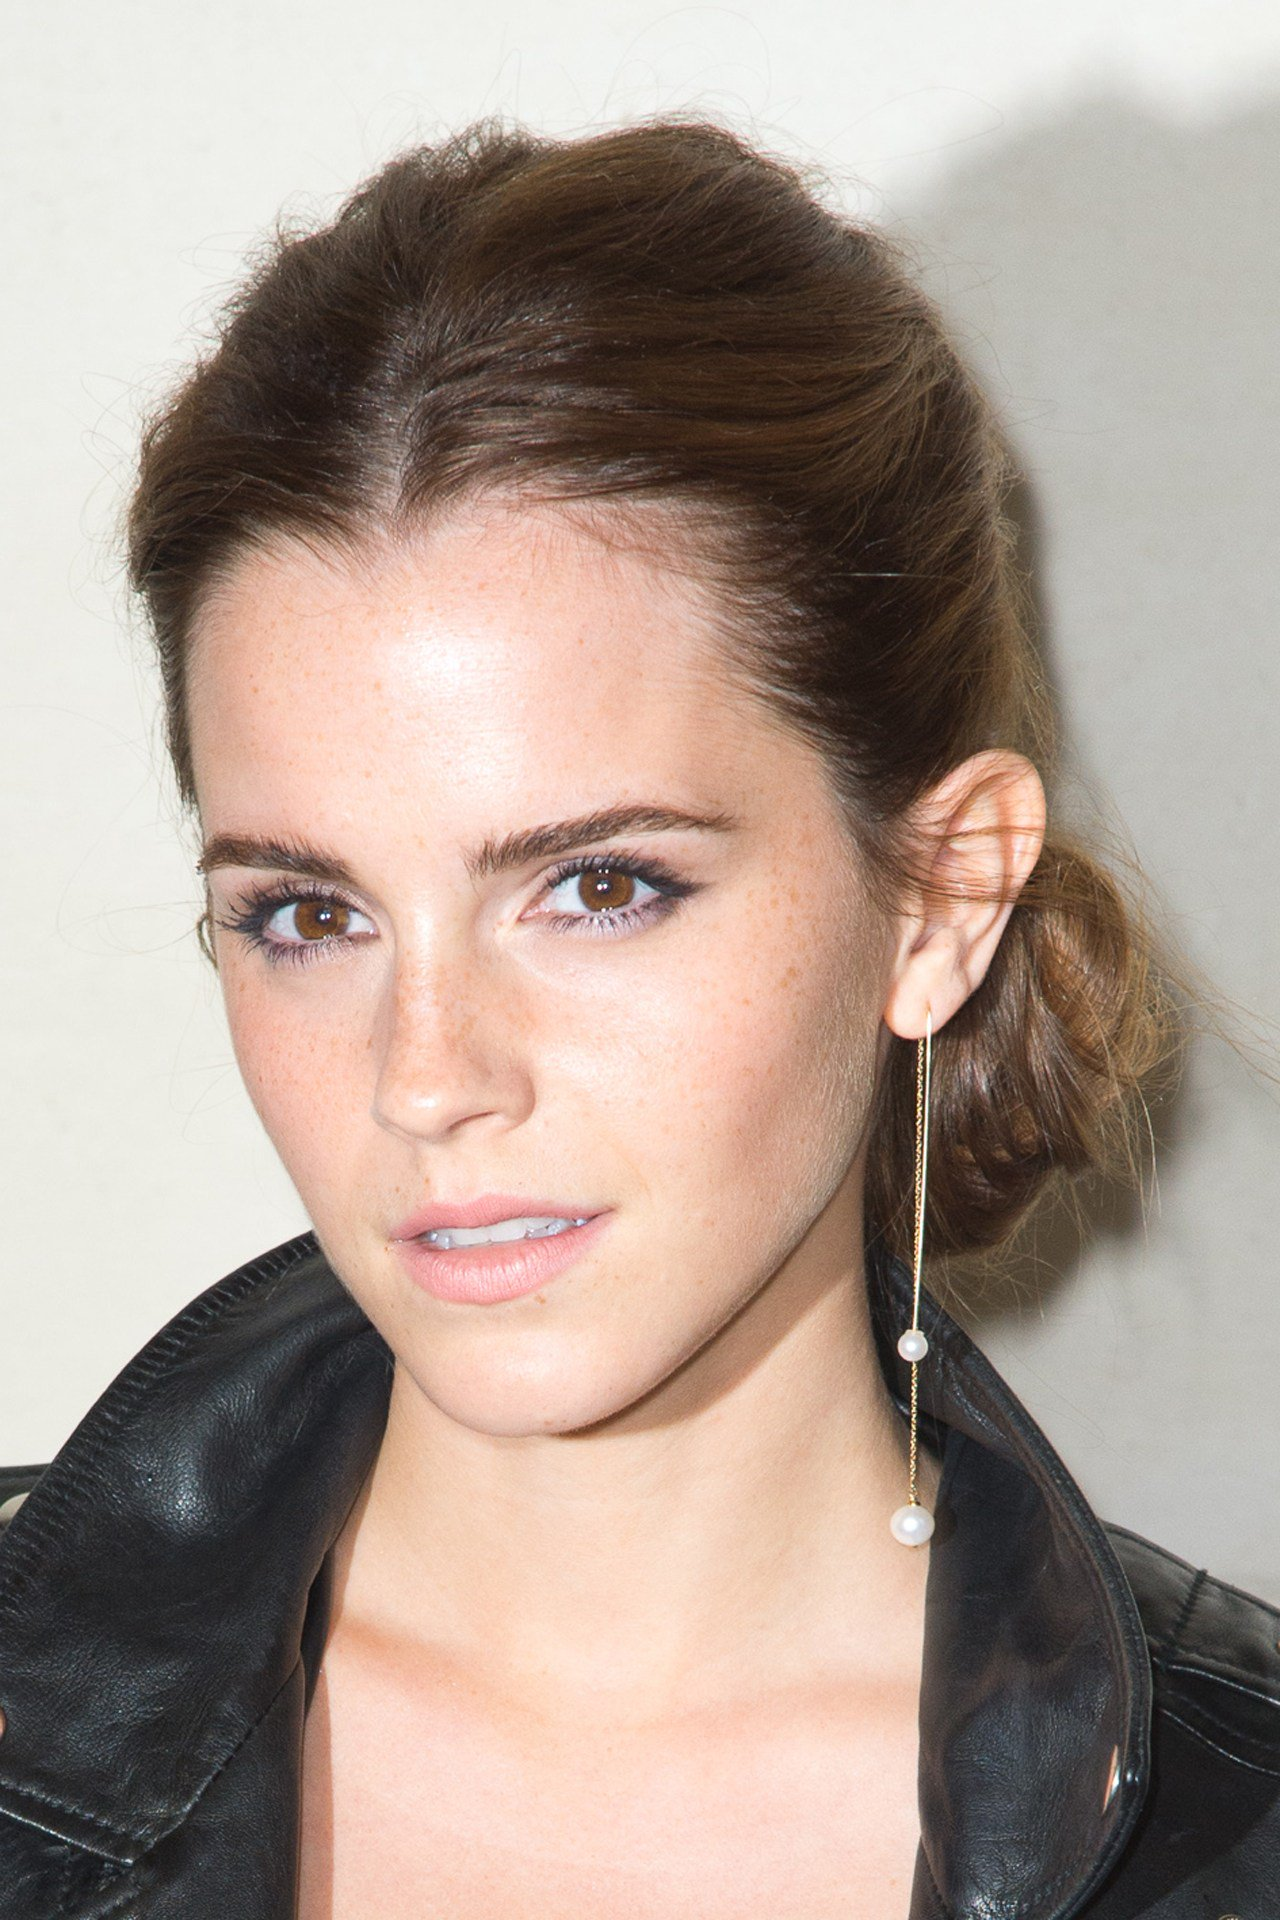 What has @EmWatson given away for charity? https://t.co/dMgirZgDHY https://t.co/ympZMmzJTp